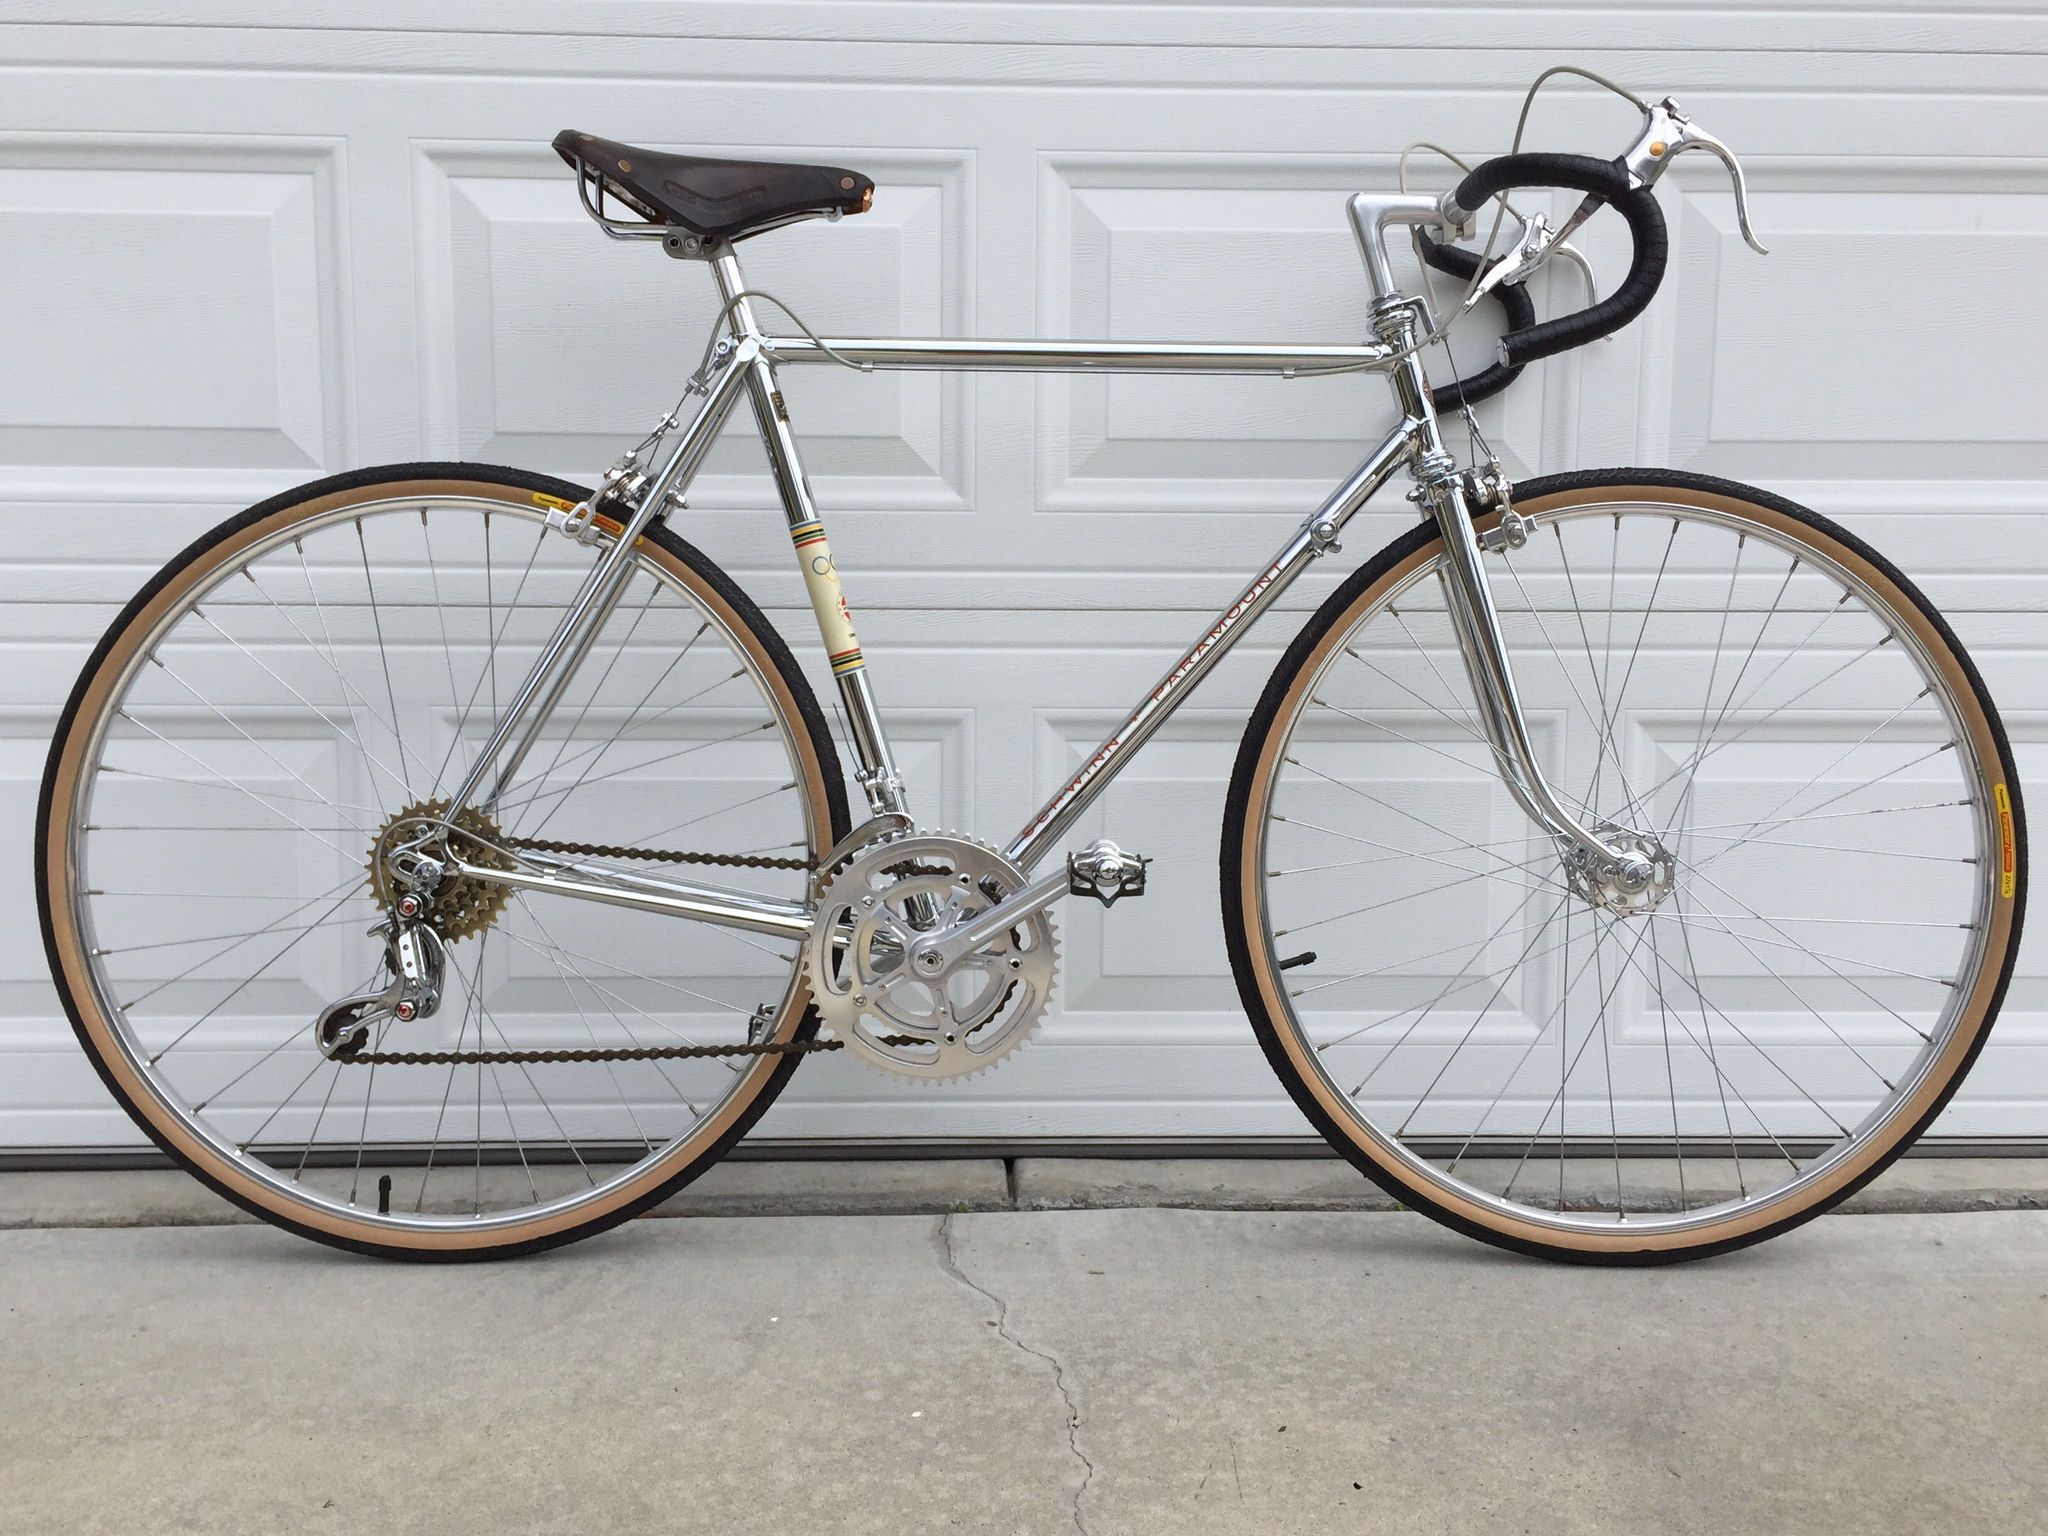 9e776cae8 1972 Schwinn Paramount chrome P15-9 all original. Rare pristine ...